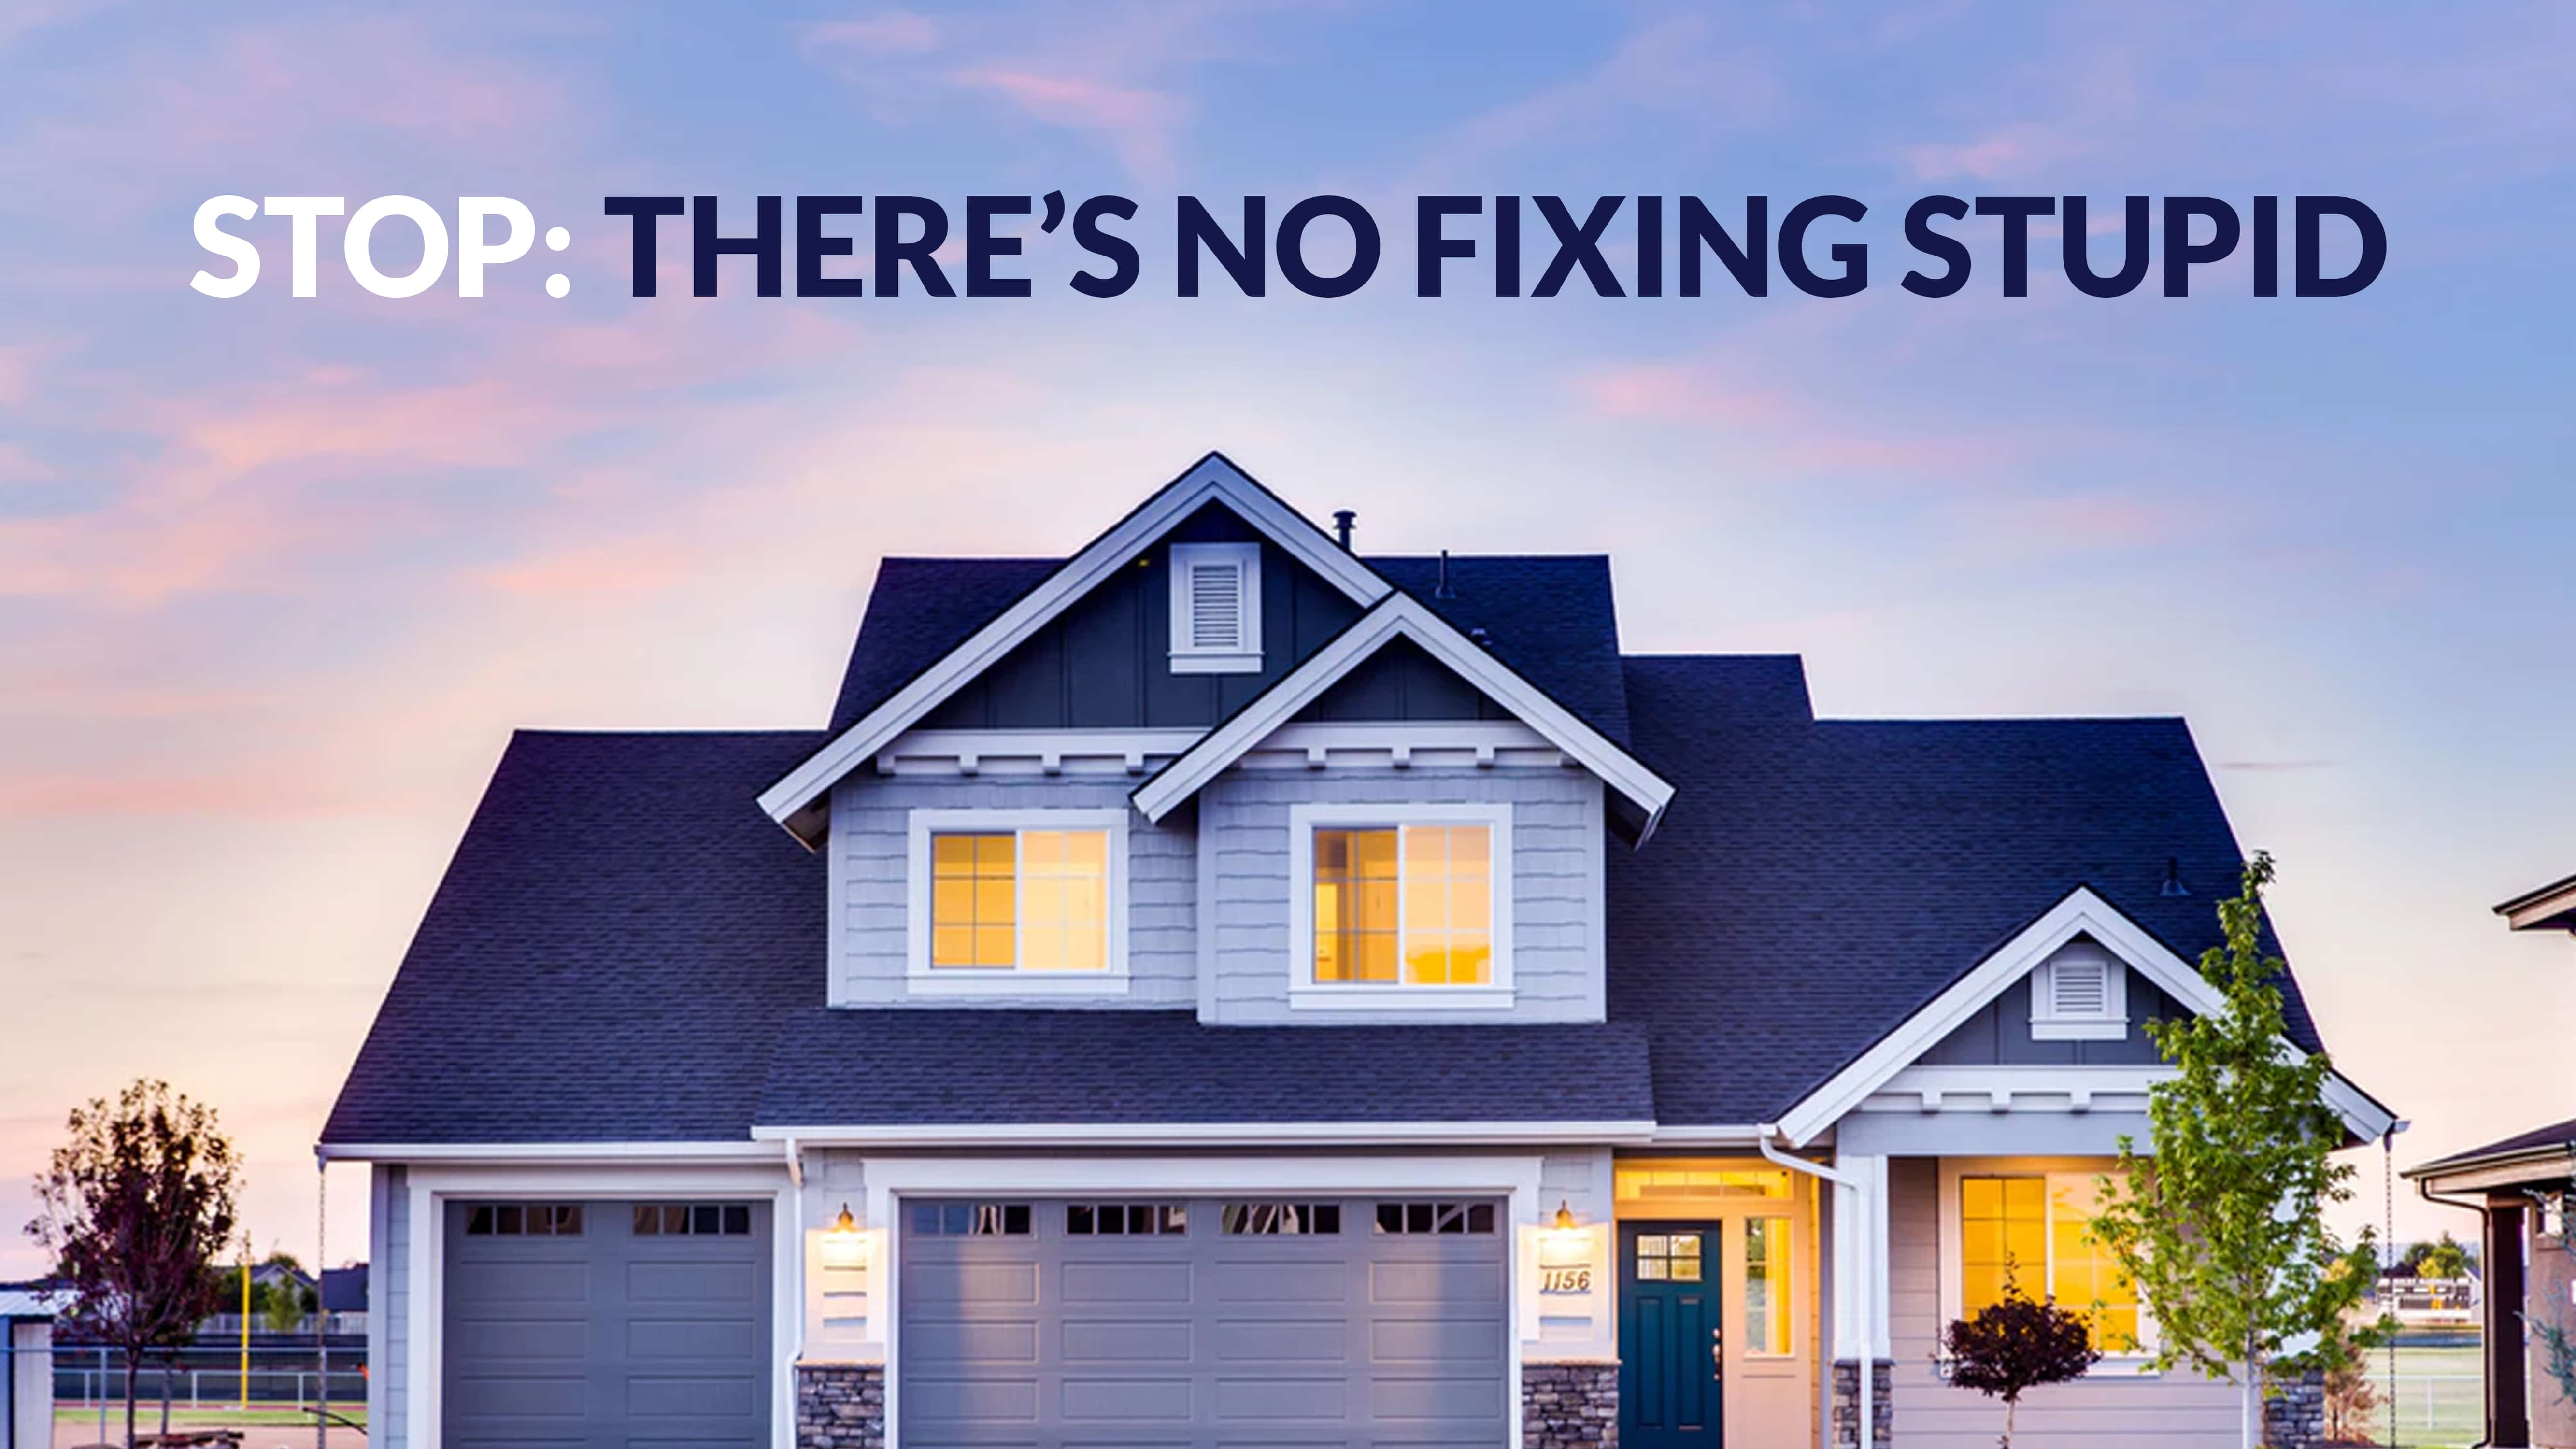 STOP: There's no fixing stupid